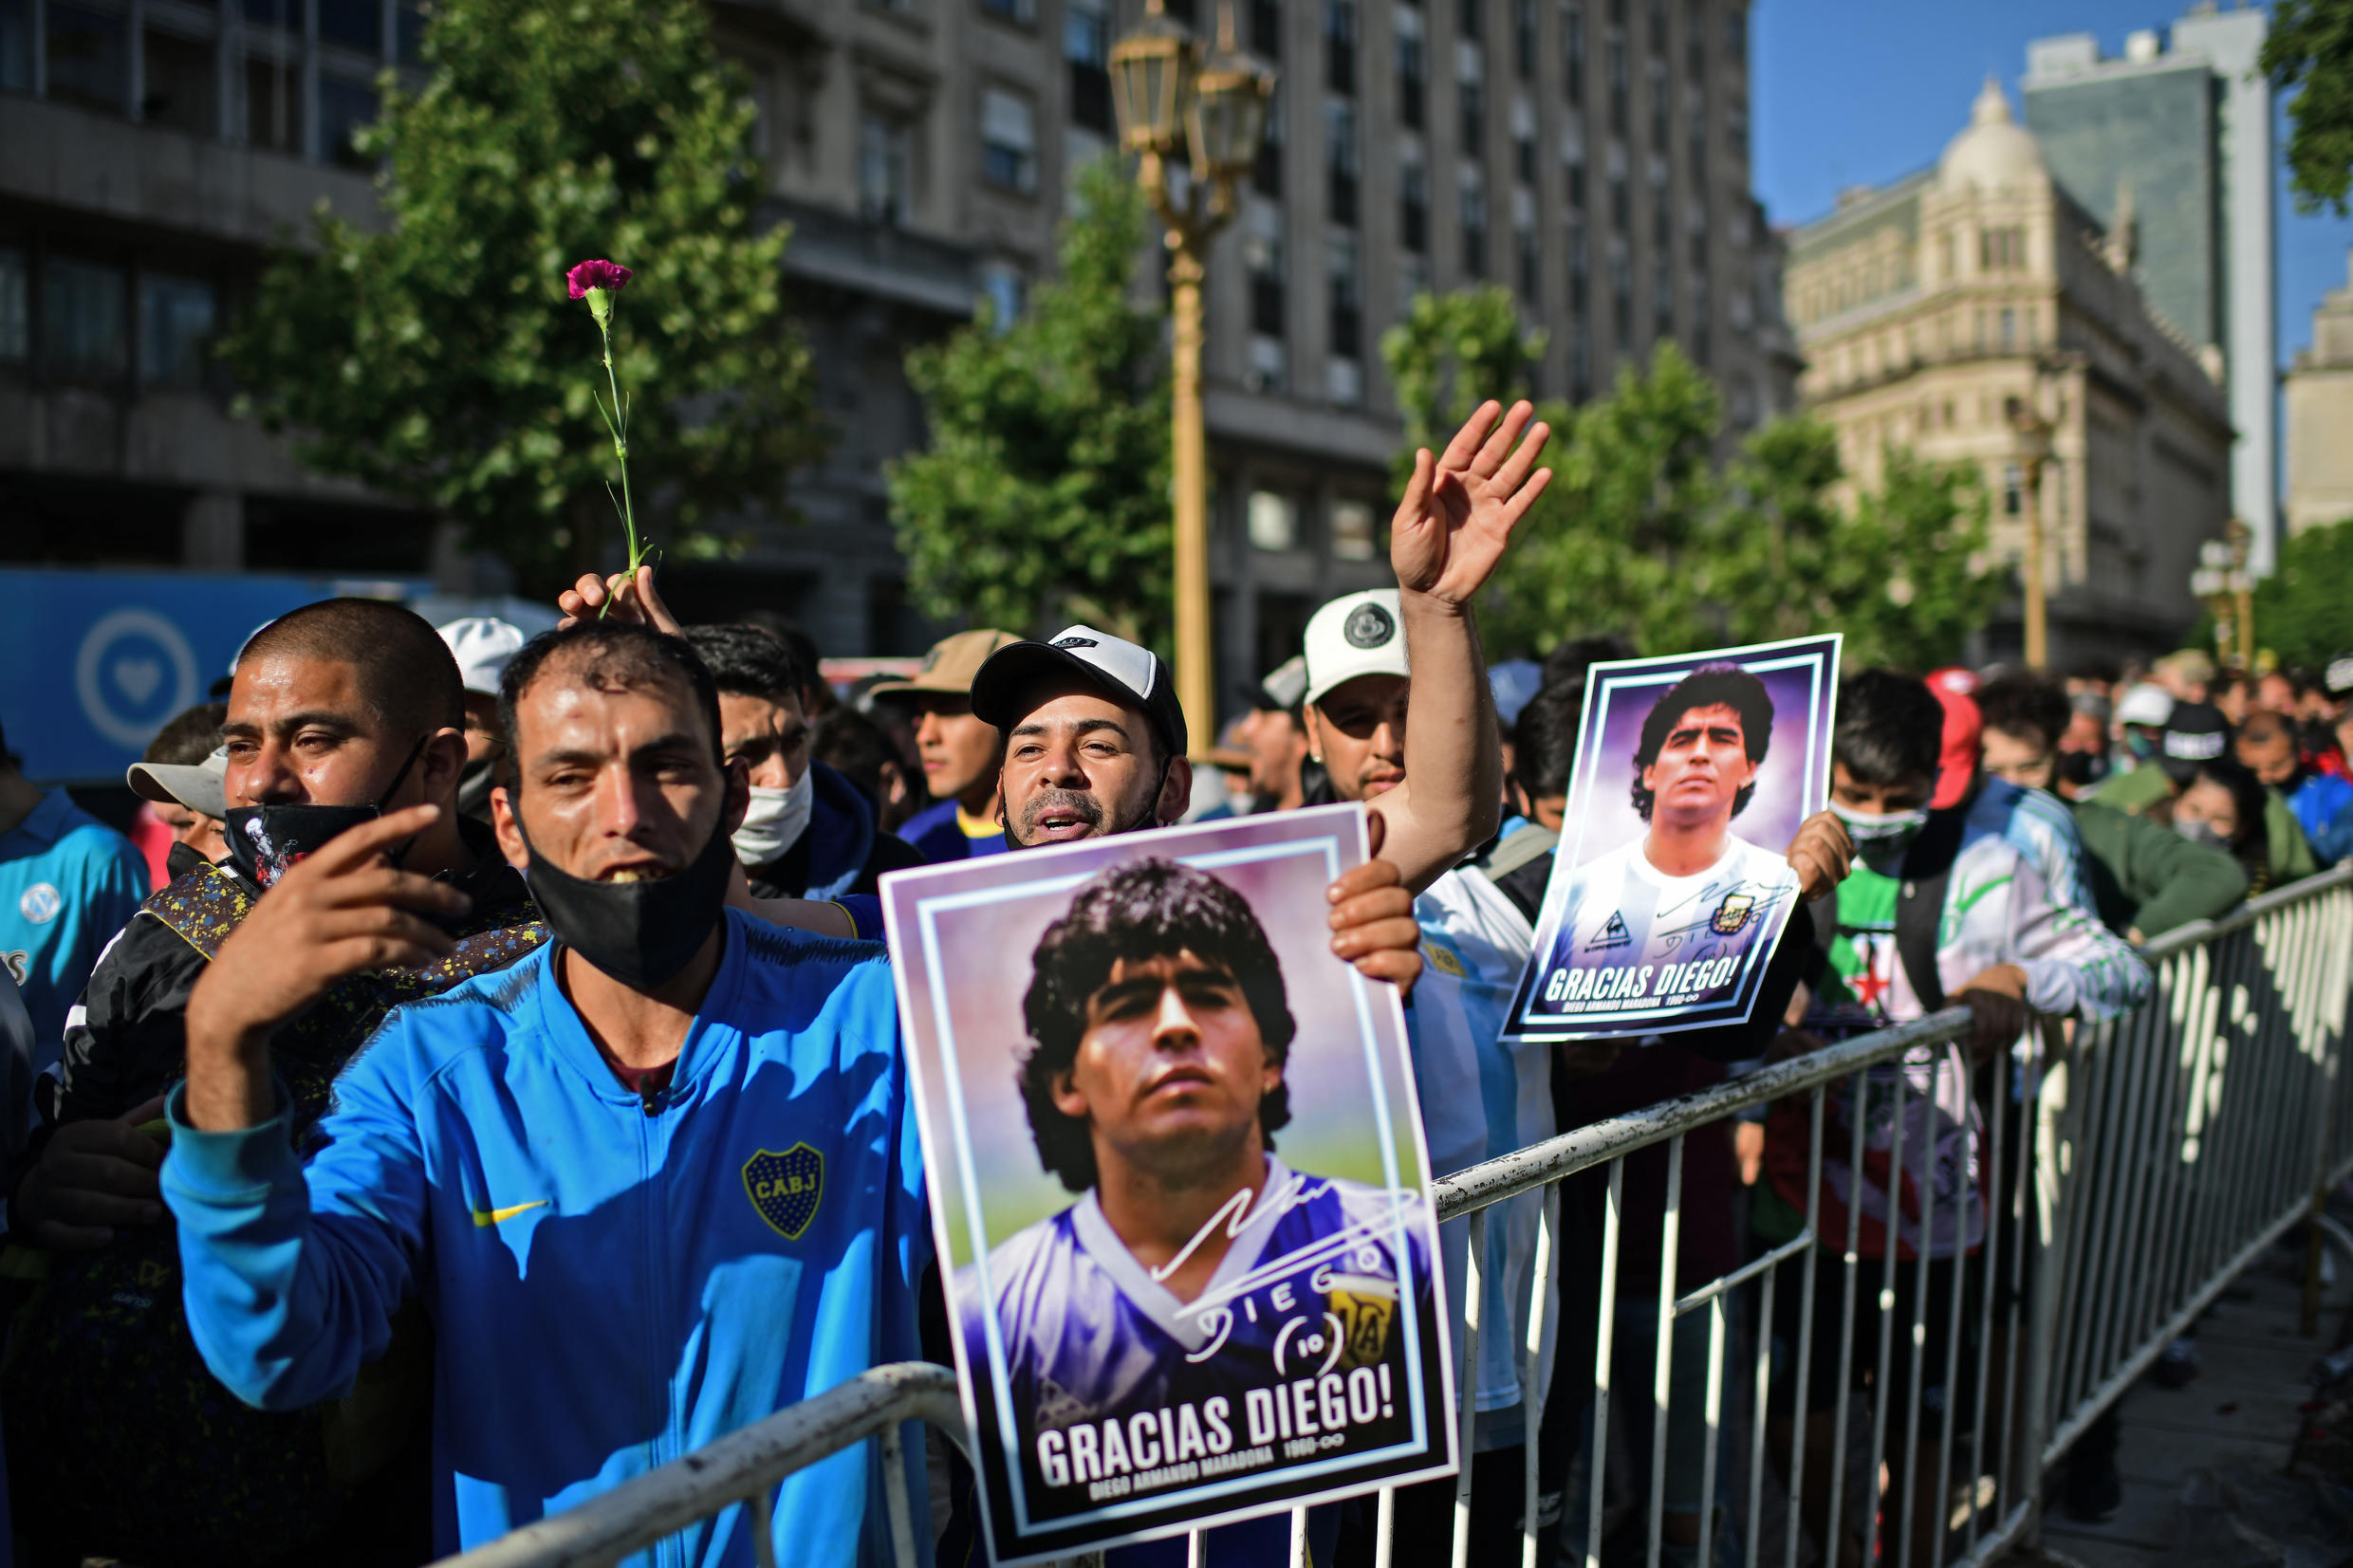 Thousands of Argentines make long lines to enter the Casa Rosada and say goodbye to the late soccer star Diego Armando Maradona on November 26, 2020 in Buenos Aires